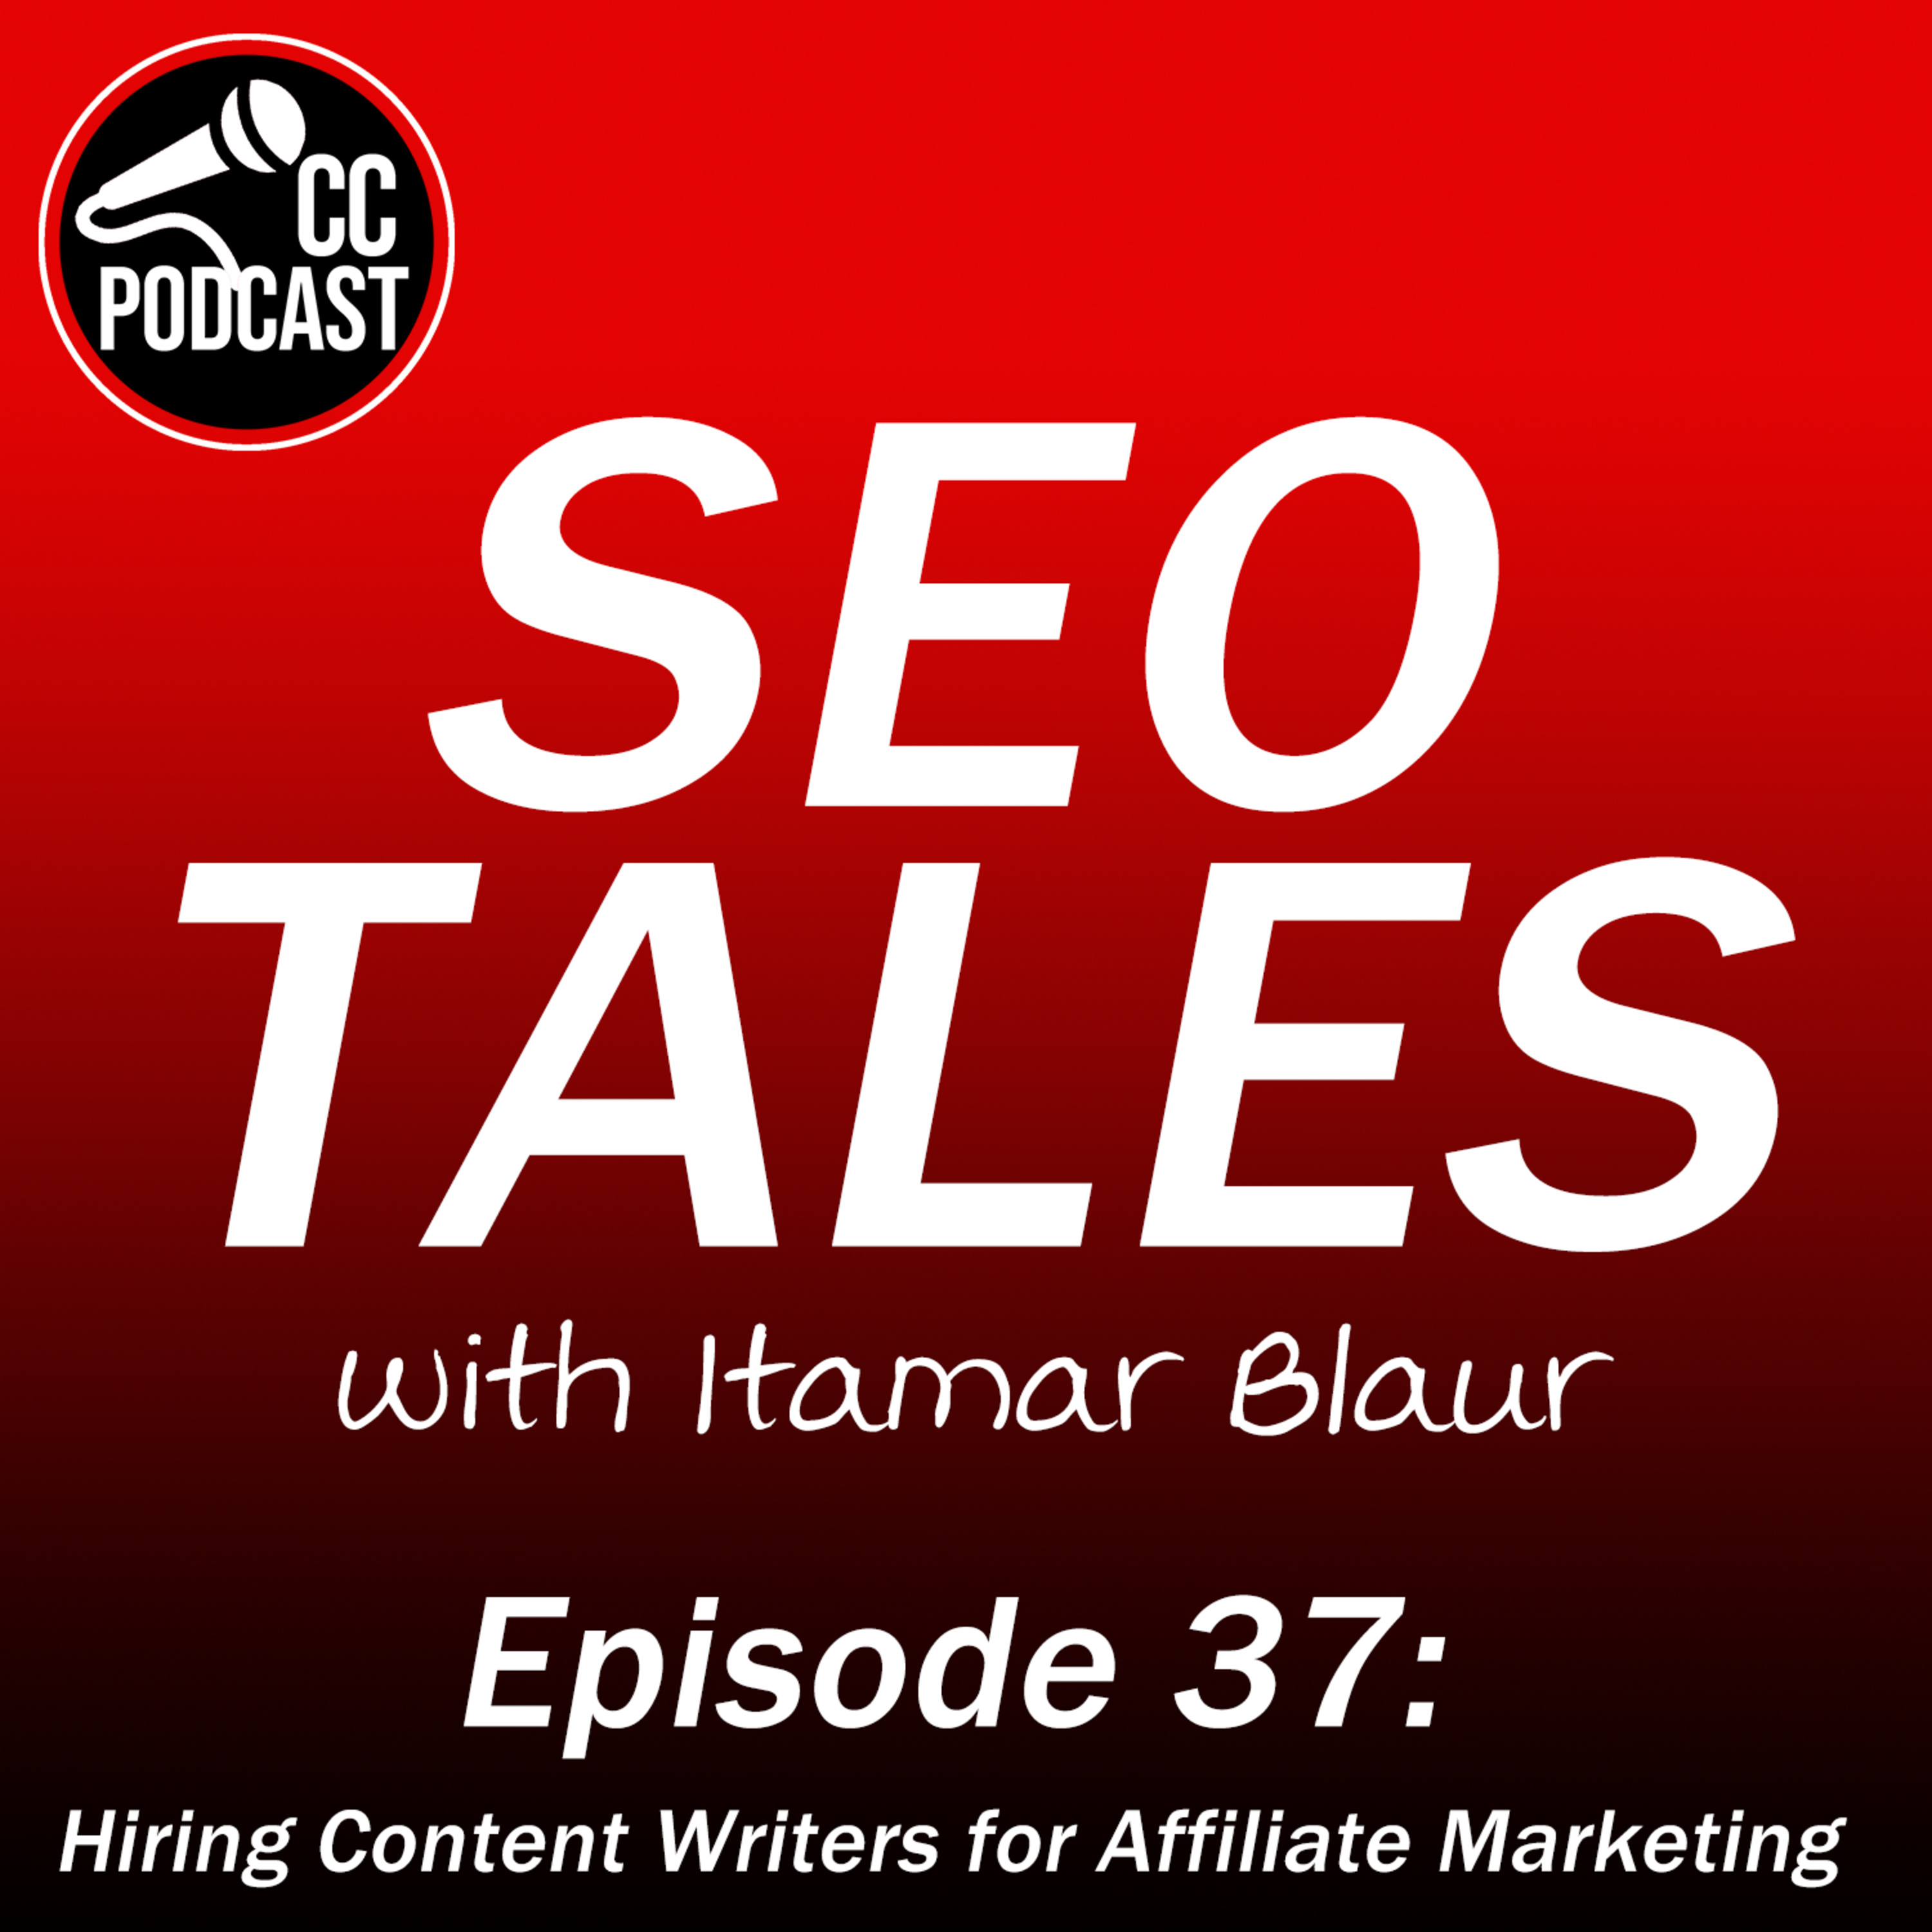 SEO Tales Episode 37 - Hiring Content Writers for Affiliate Marketing